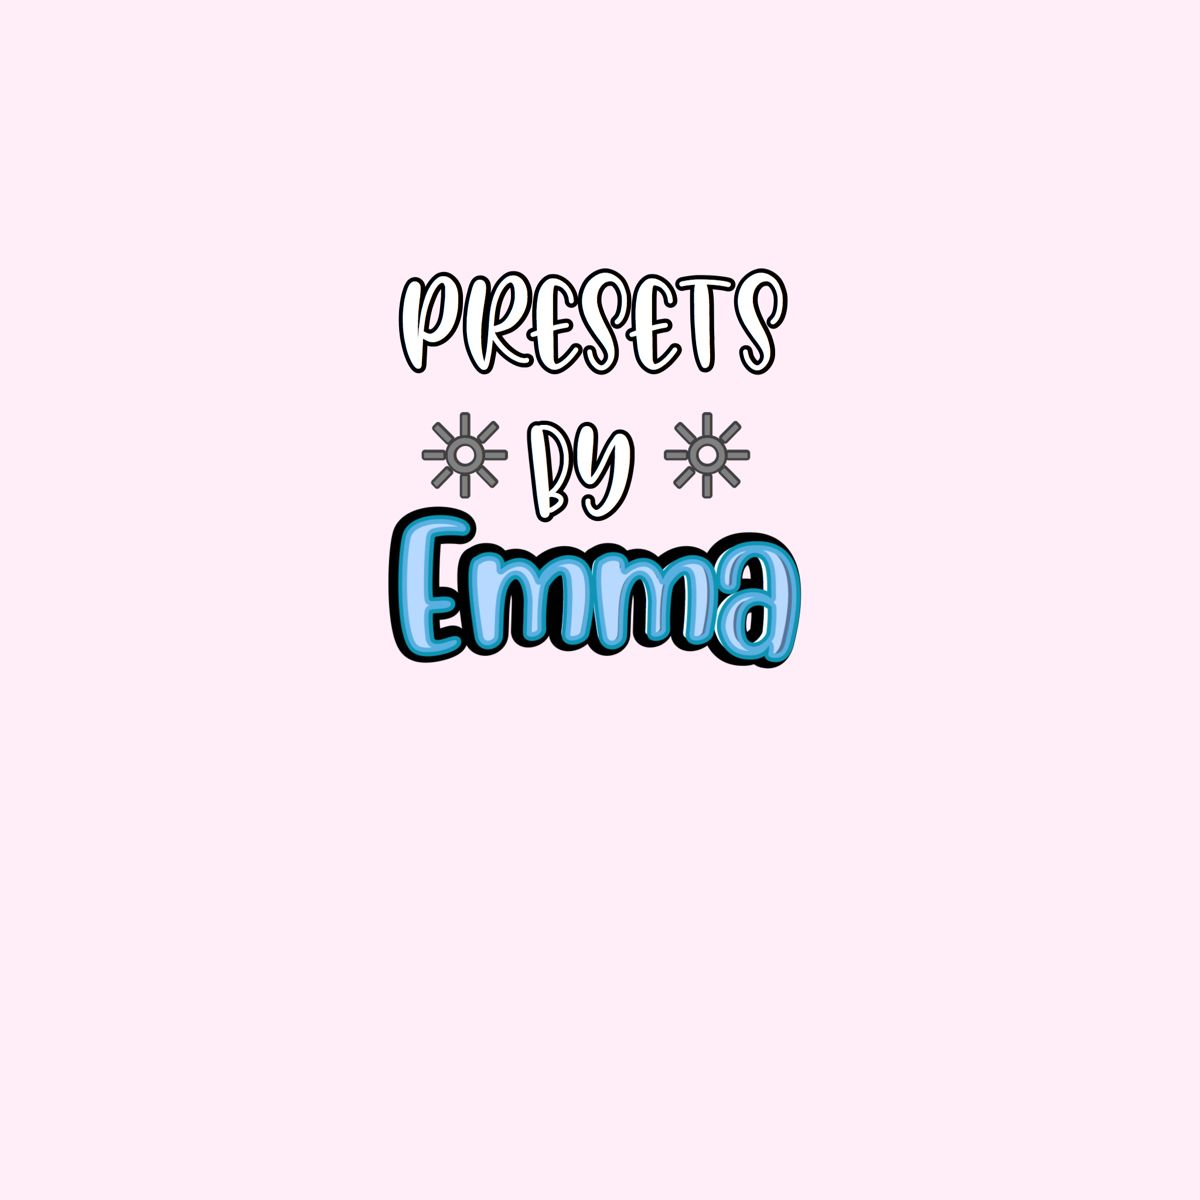 Presetsbyemma On Instagram And Tik Tok Editing Pictures Money Saver One Pic